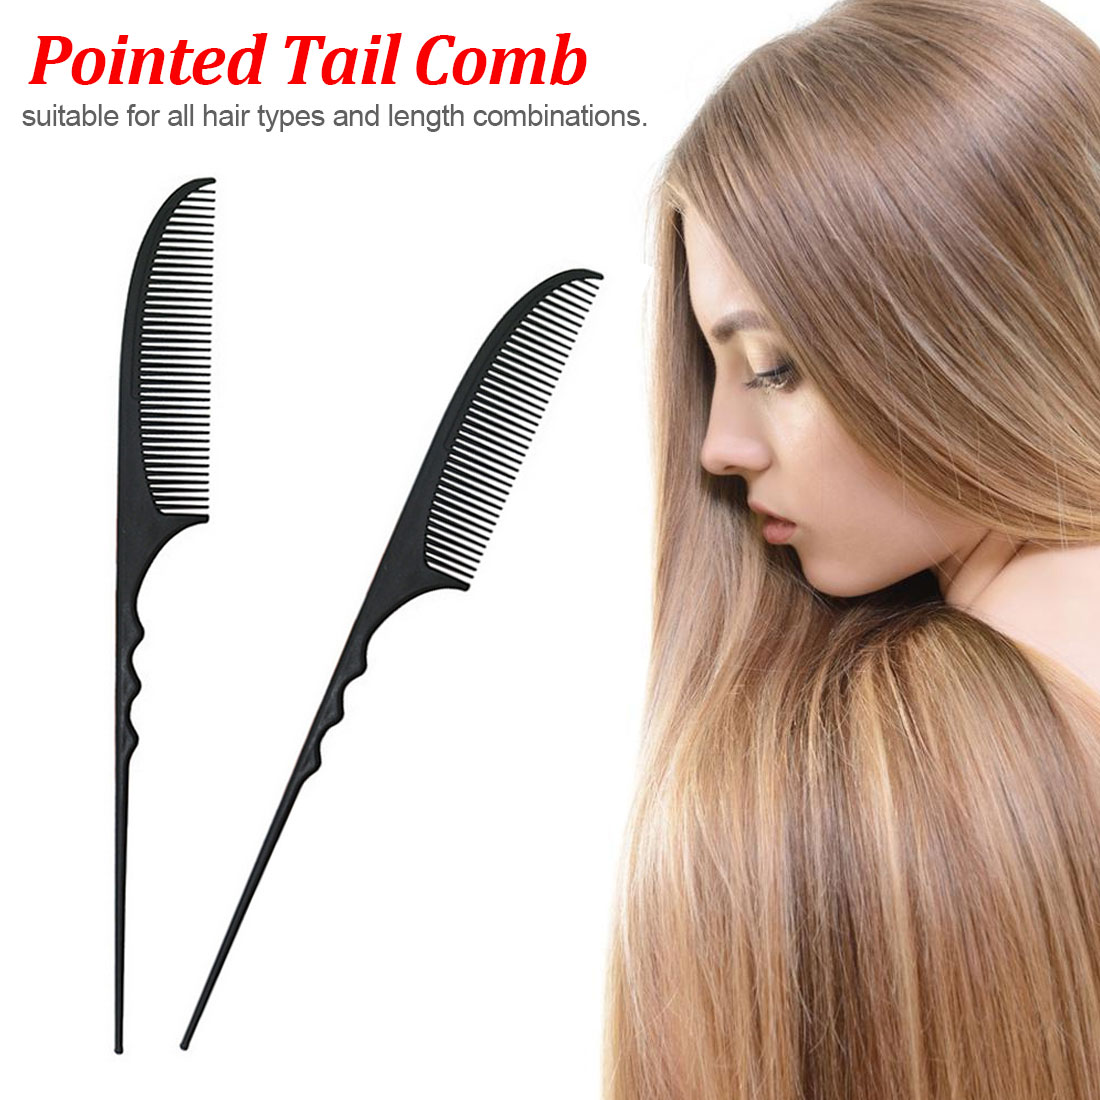 Hair Pointed Tail Hairdressing Styling Comb Clip Design Brush Tools Nice Type Hairbrush Carbon Fiber Tools